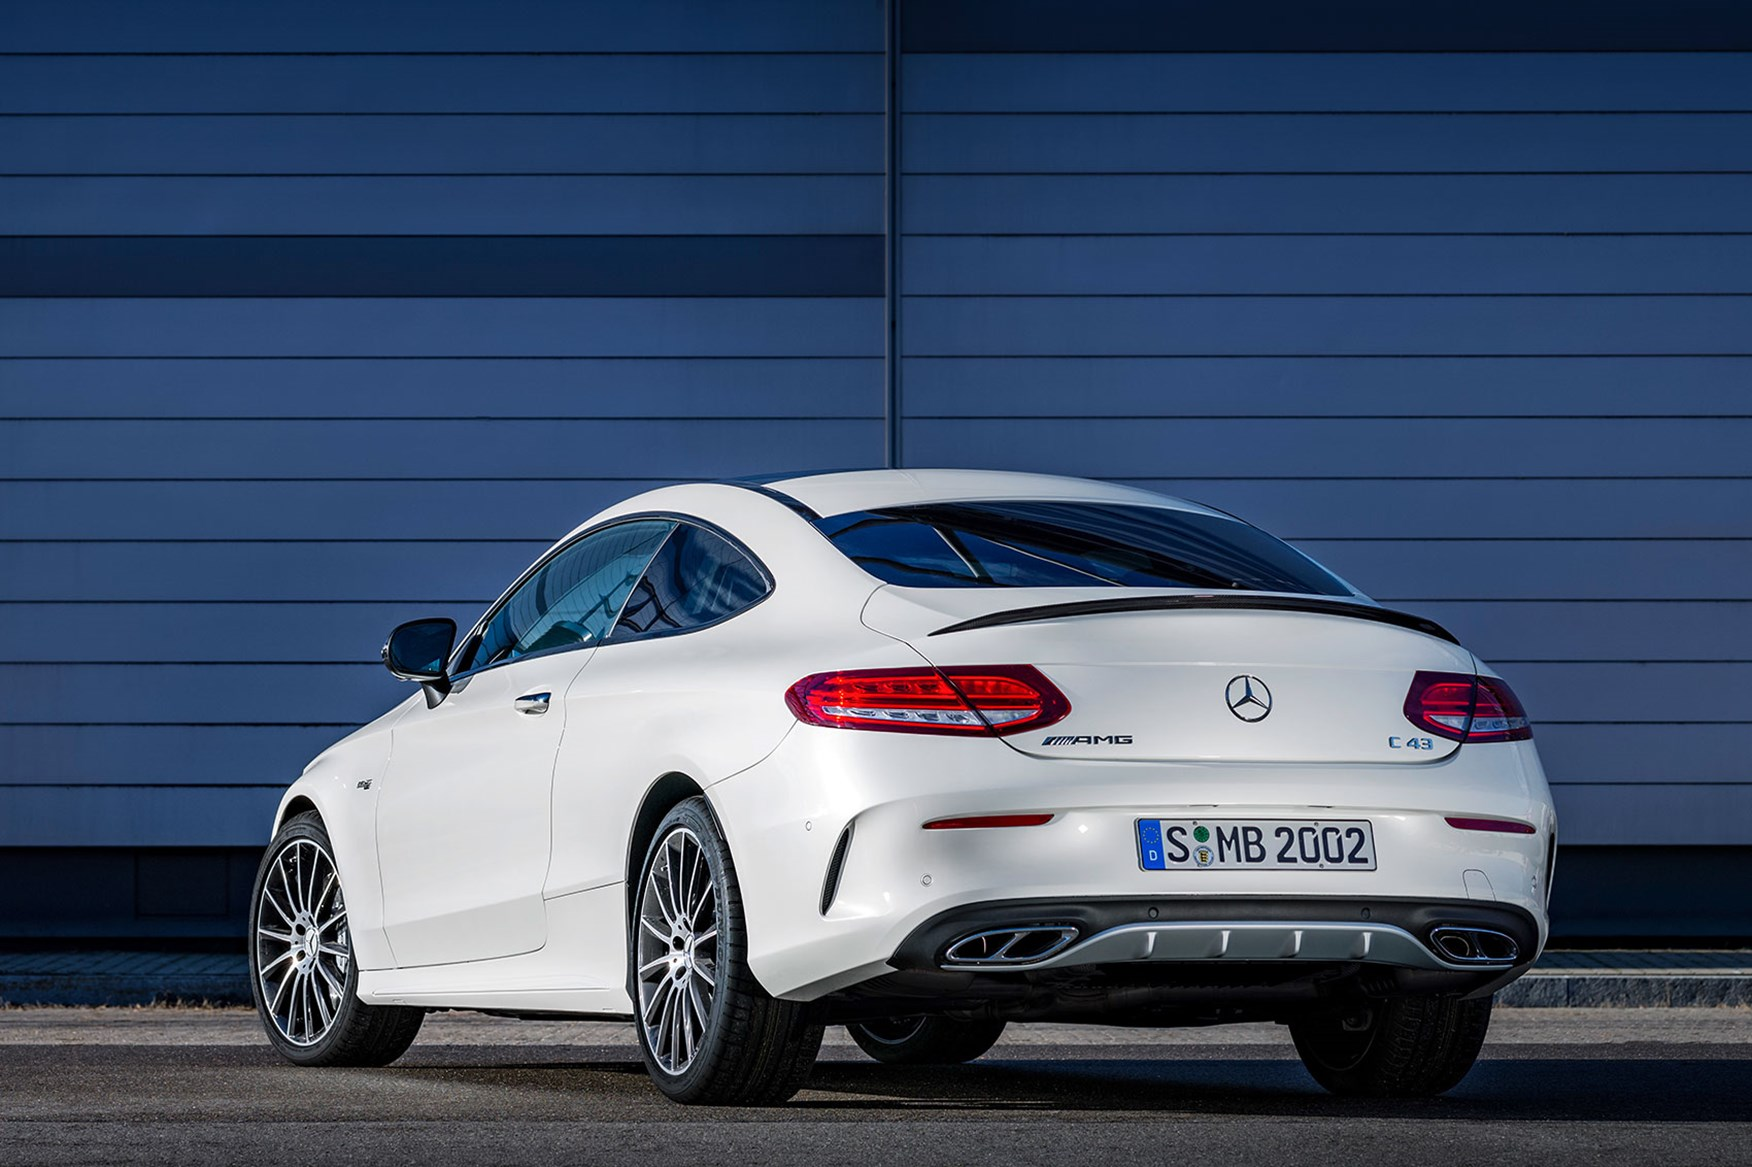 mercedes-amg c43 coupe revealed: the c63 gets a baby brother